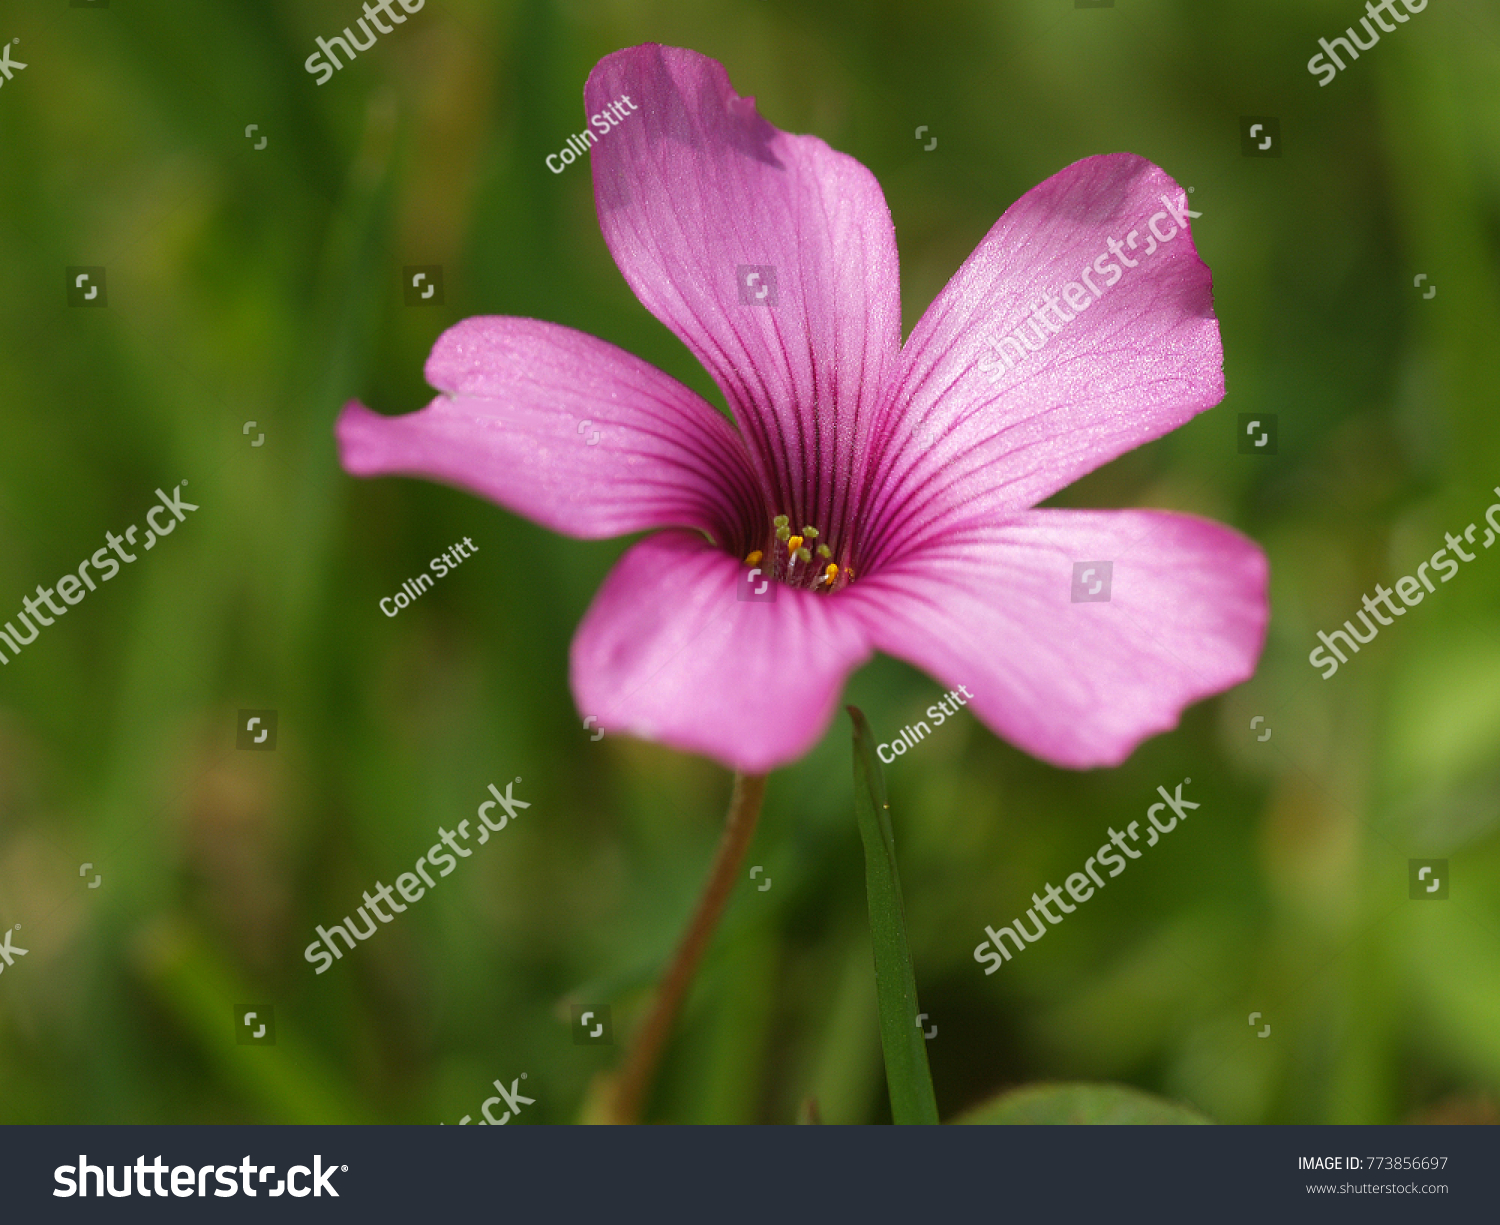 Tiny pink flower from a weed in my lawn ez canvas mightylinksfo